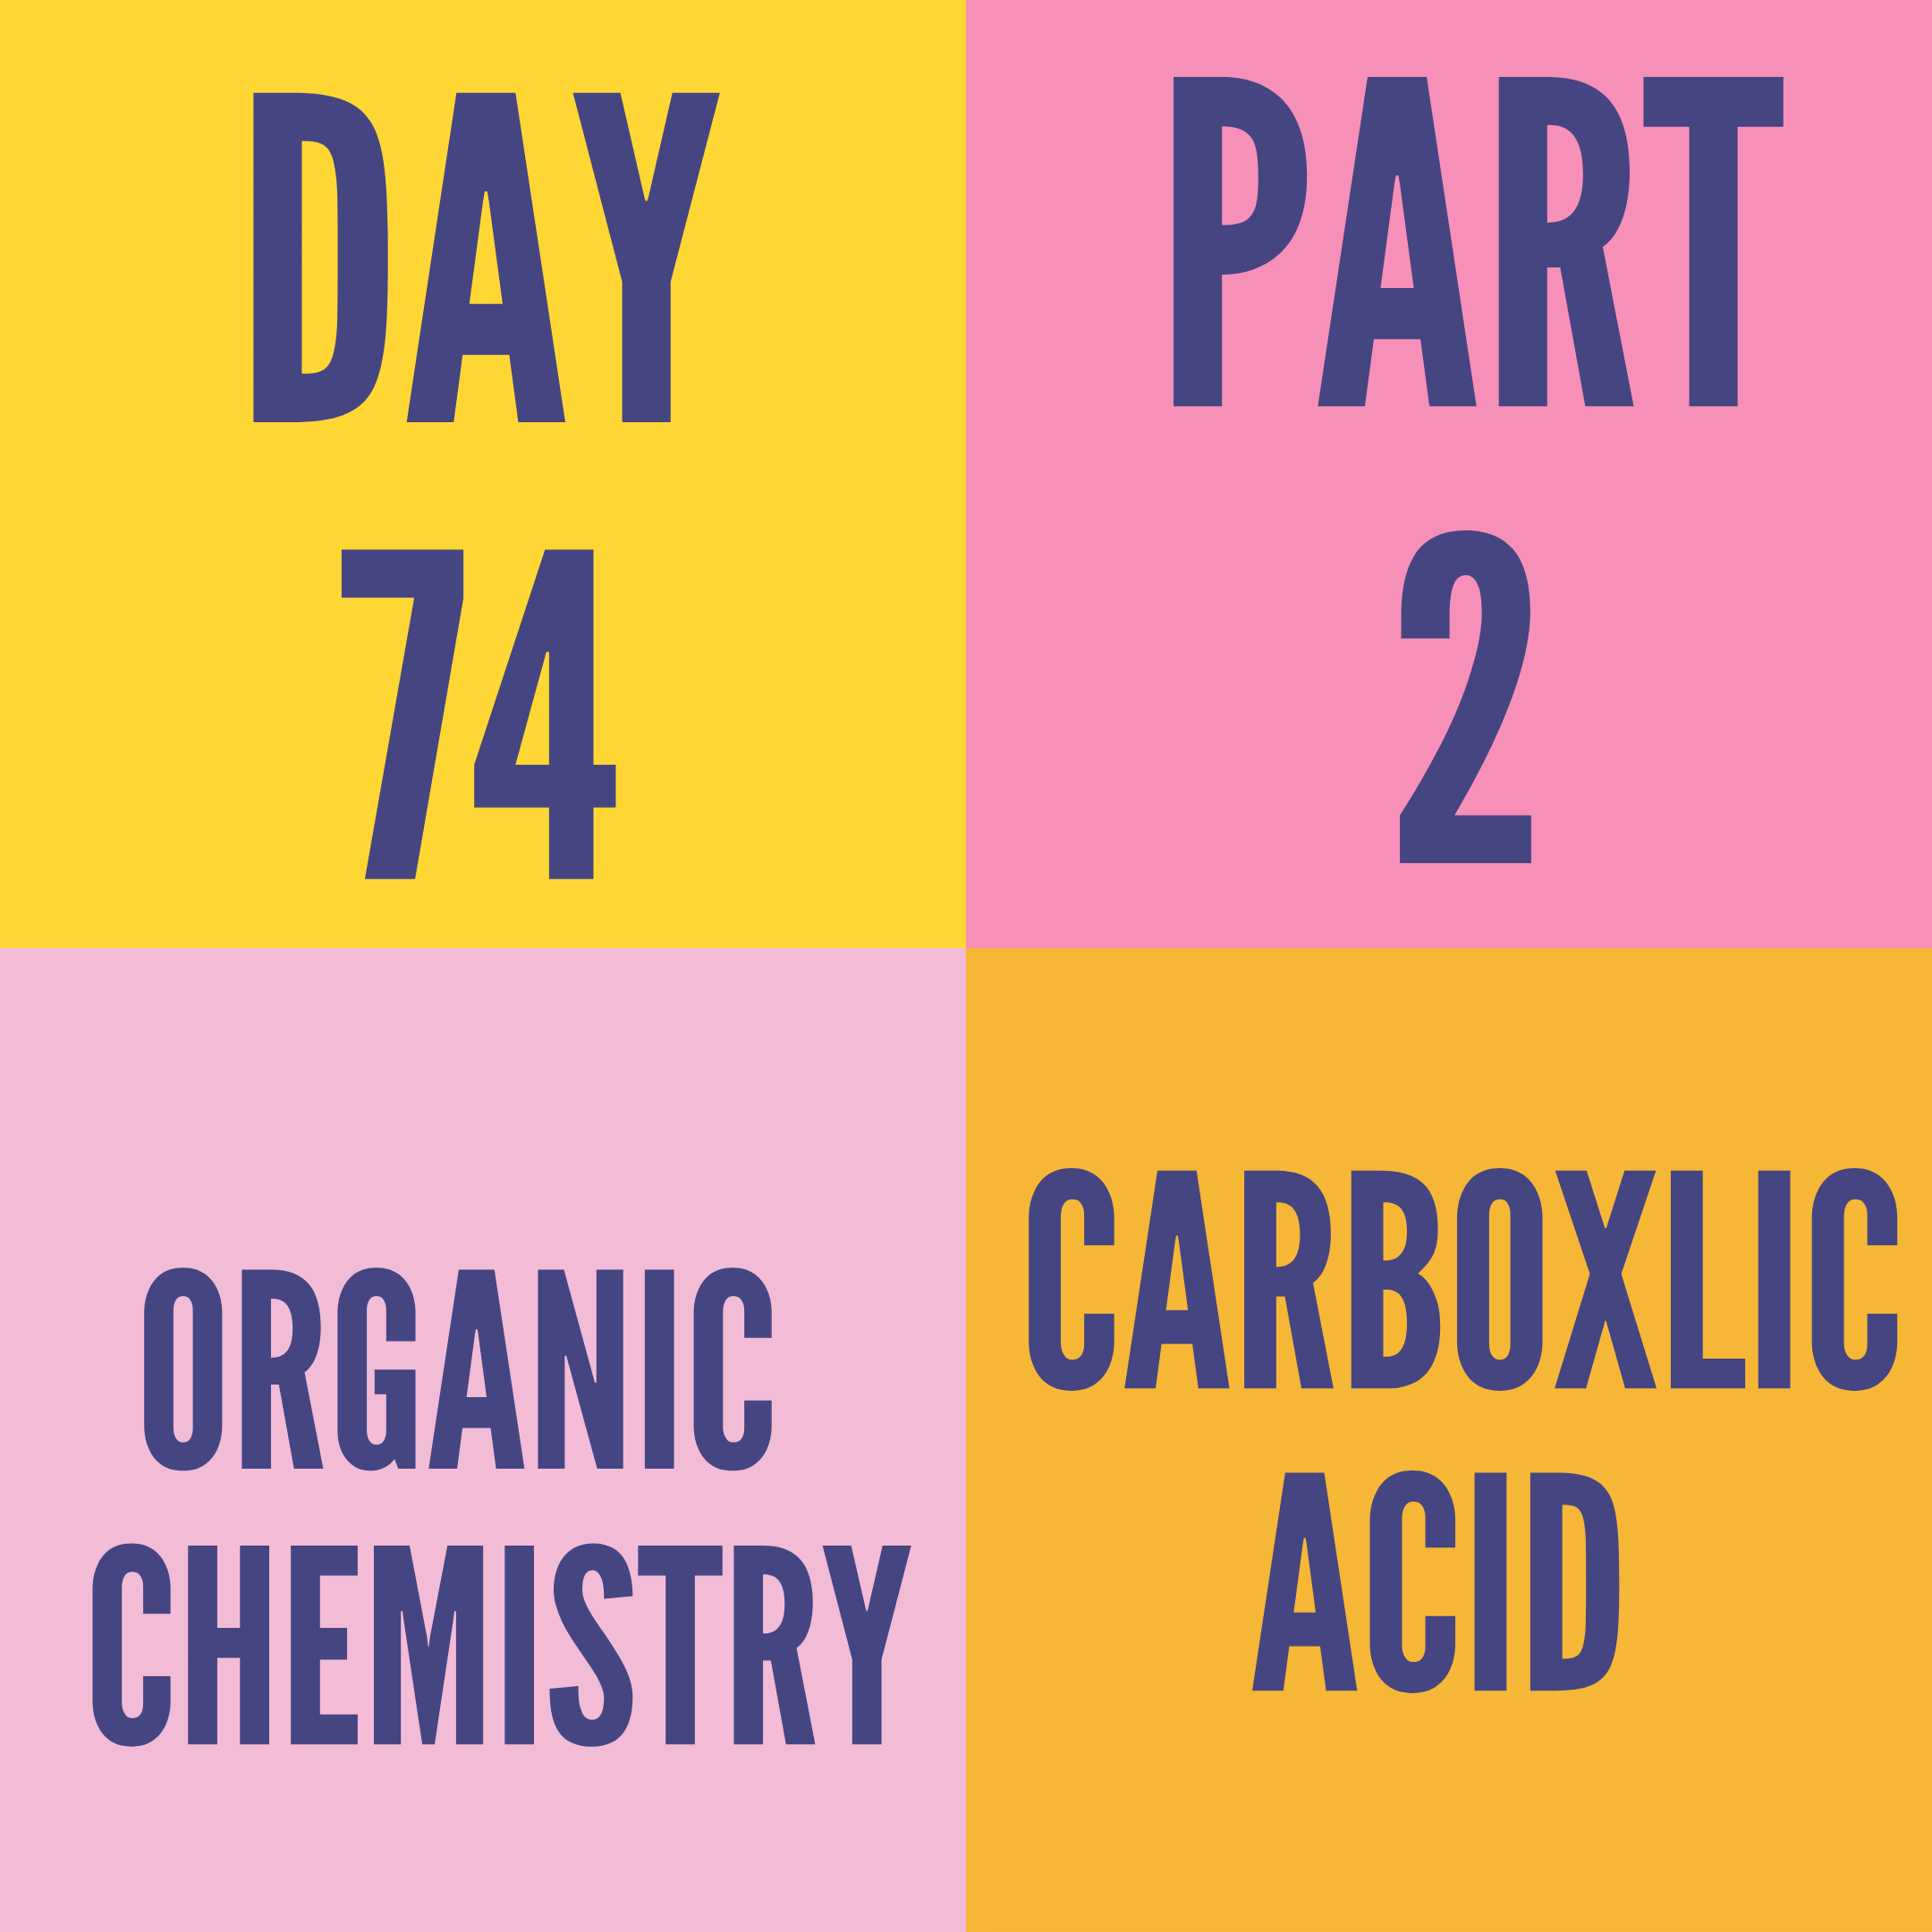 DAY-74 PART-2 CARBOXYLIC ACID